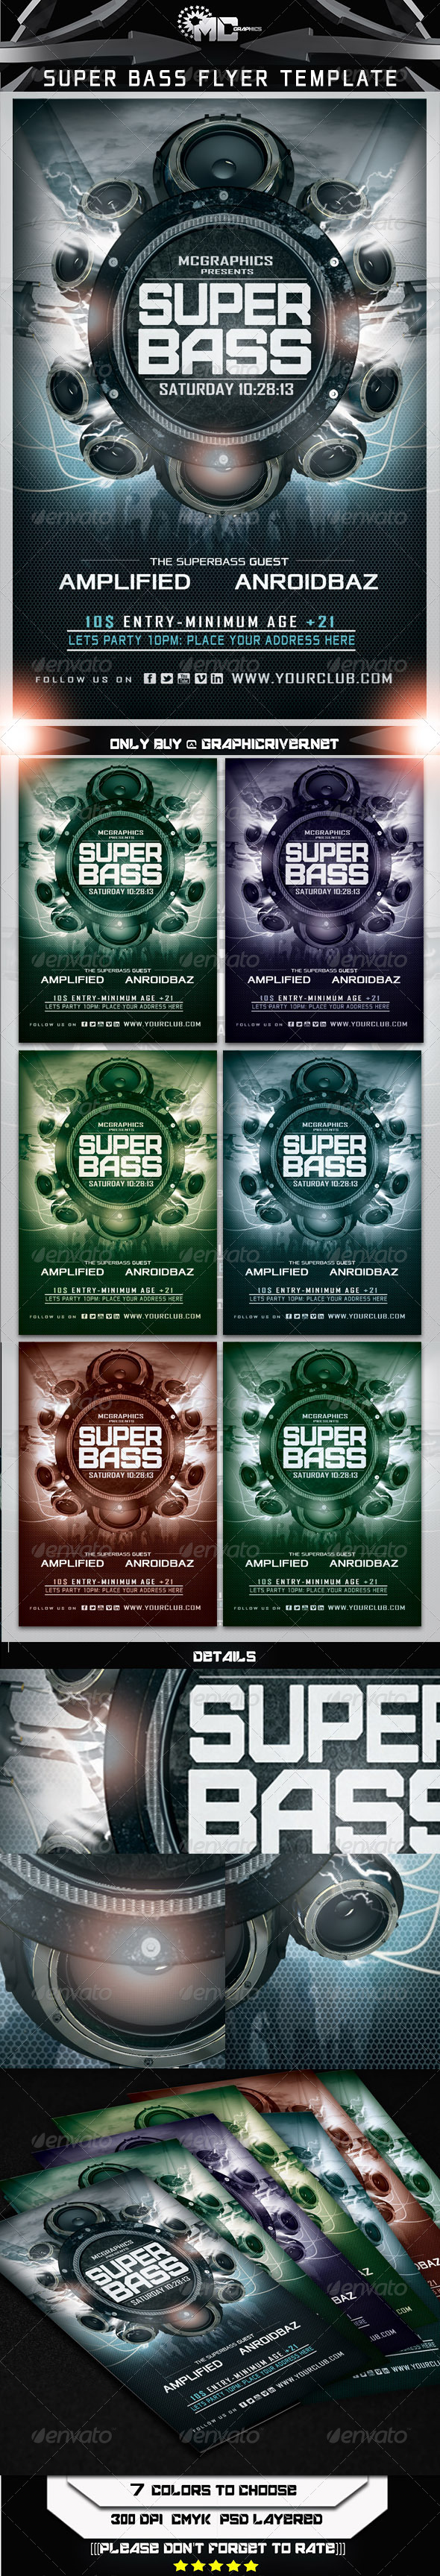 Super Bass Flyer Template